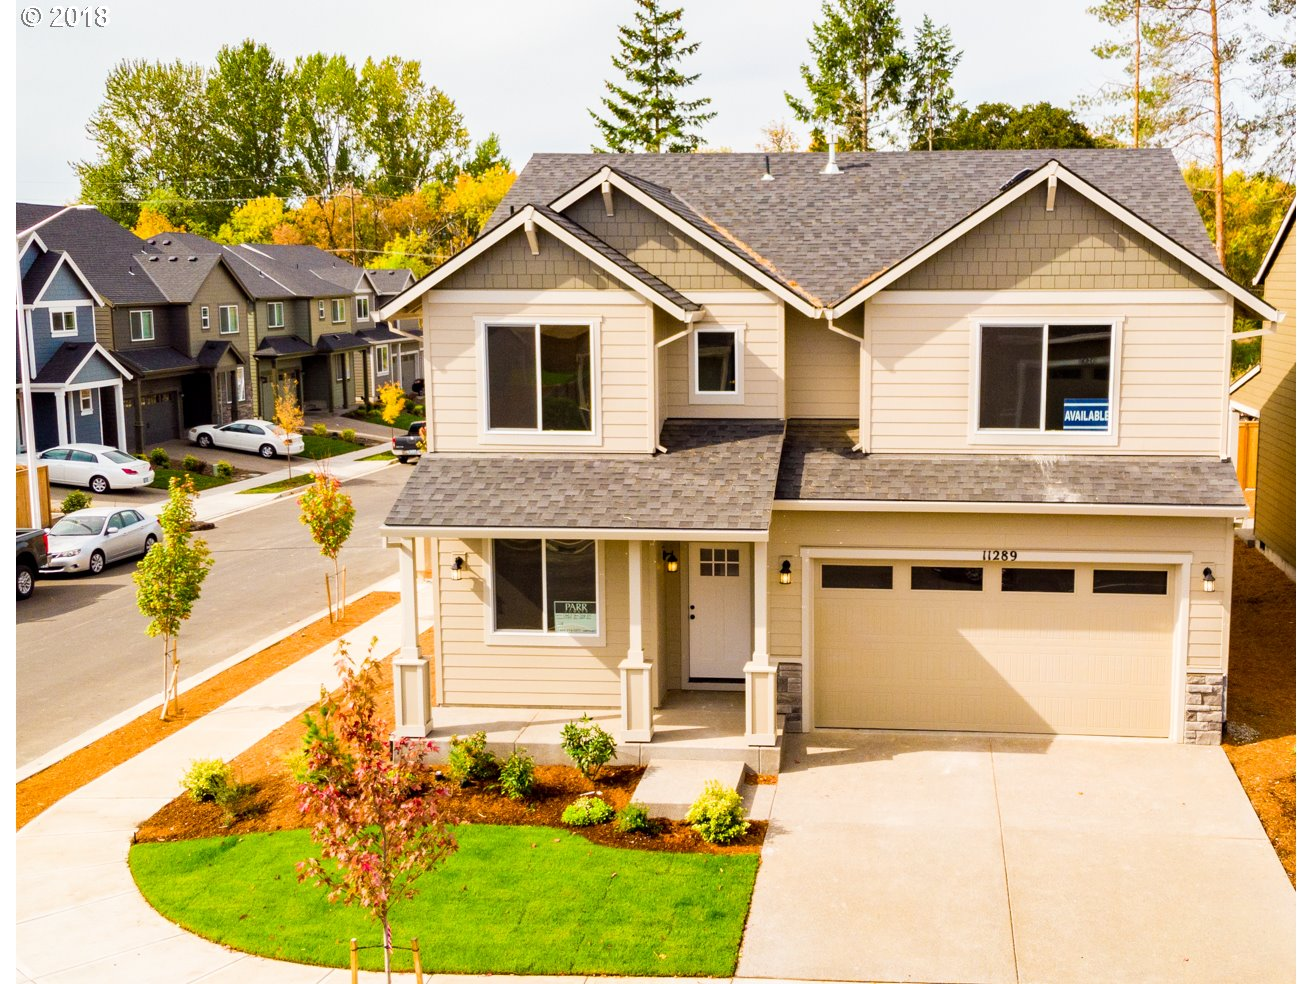 Brand new quiet neighborhood built by long time local builder.  Fantastic location,  only min. to Hwy 26, Hi-Tech, Nike, Intel & shopping.  Next to grade school.  Come see features such as 9 foot high ceilings on main, SS appliances, upgraded flooring, & granite!  Abundance of natural light w/ open  concept living.  Large Master suite, w/oversized walk in closet. Covered back patio for entertaining.